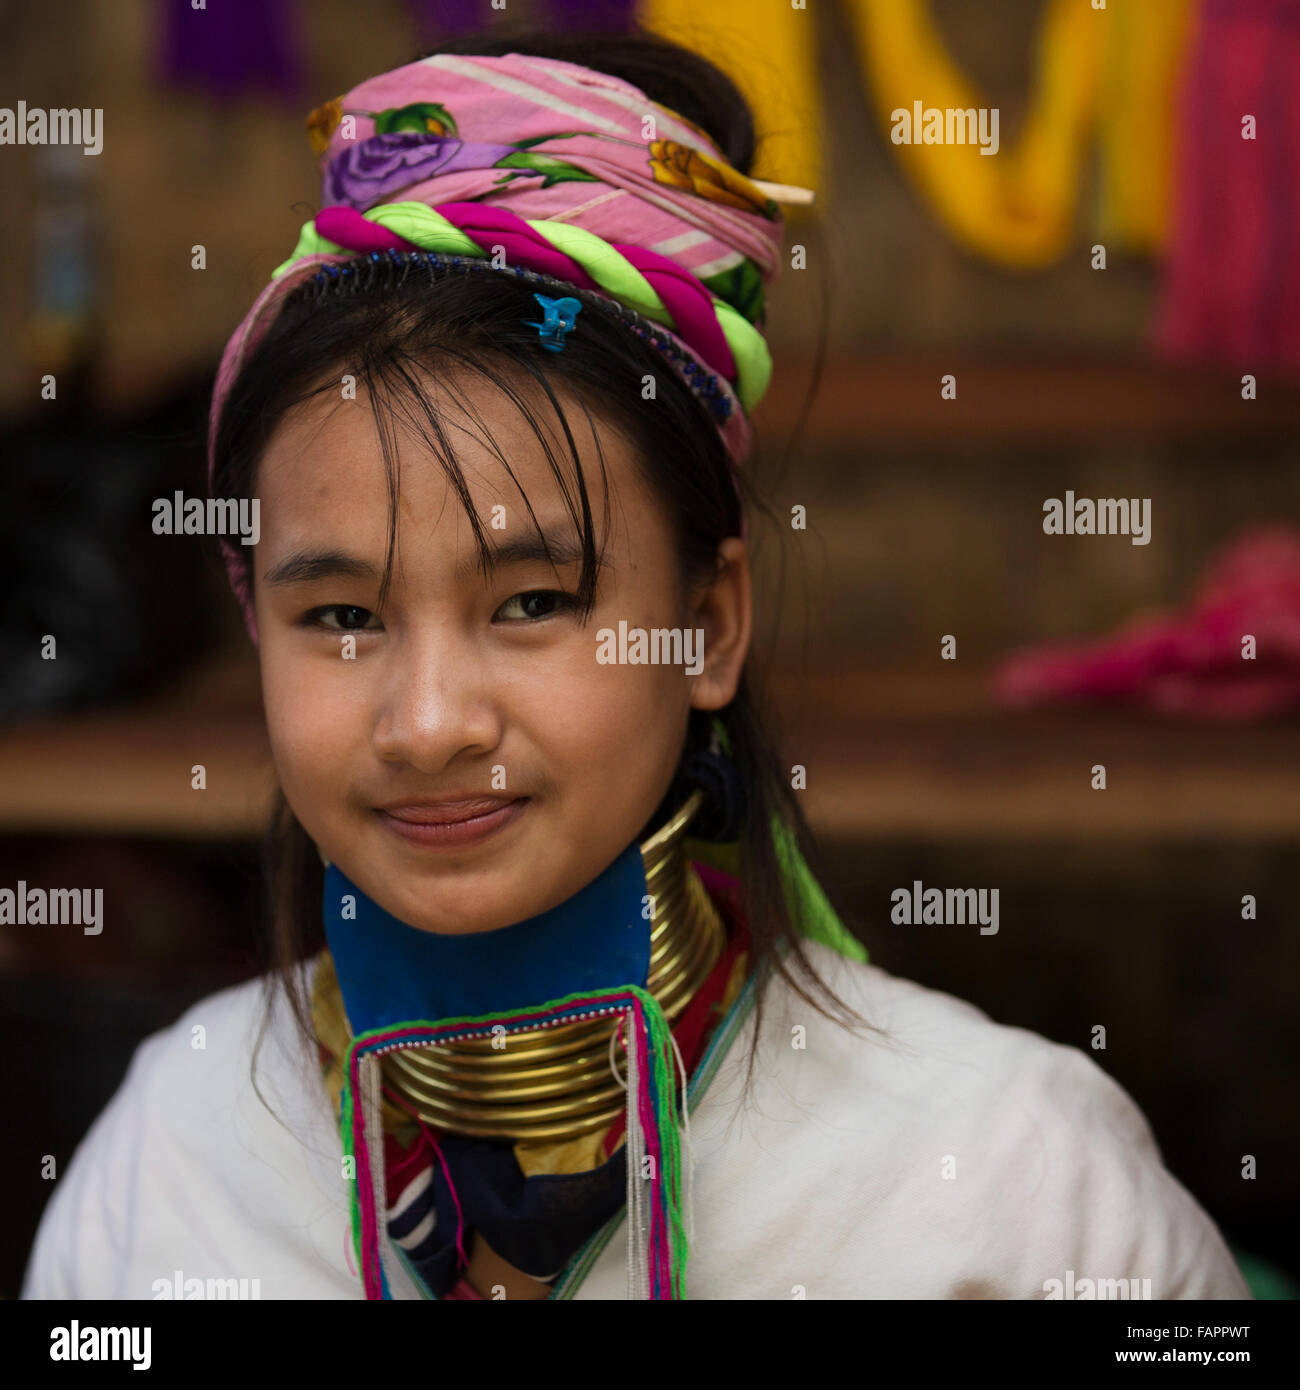 A woman from the Kayan tribe weaving in a workshop at Inle Lake in Myanmar (Burma). The woman wears brass coils on her neck. Stock Photo